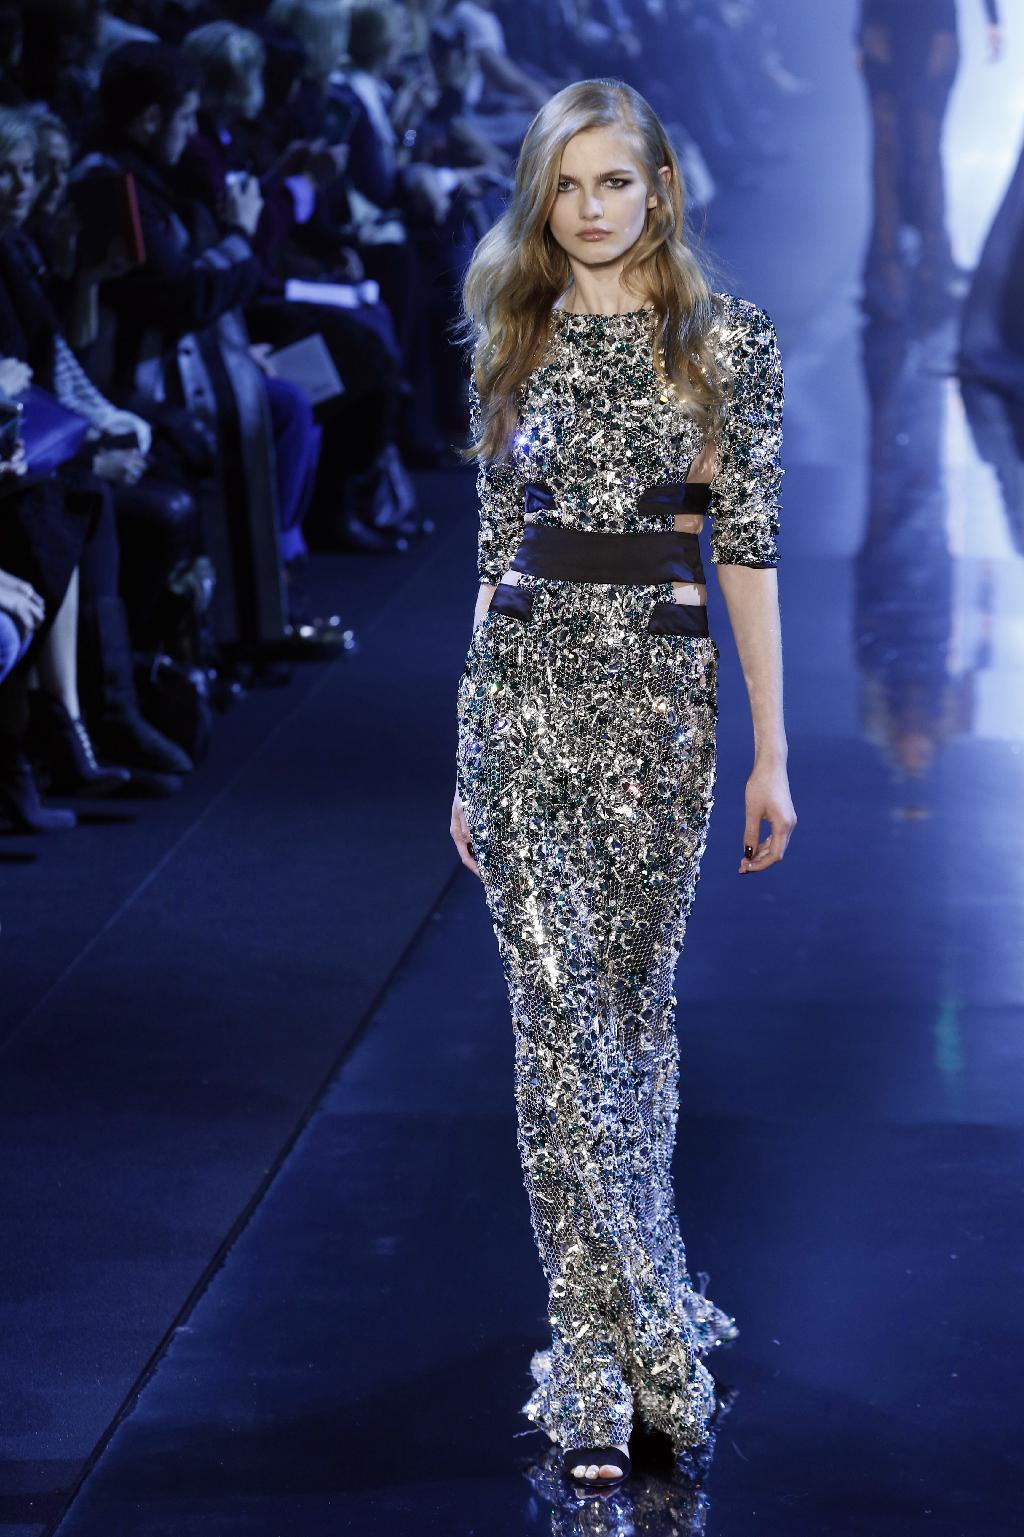 Paris haute couture: strong shapes and high shine at Alexandre Vauthier